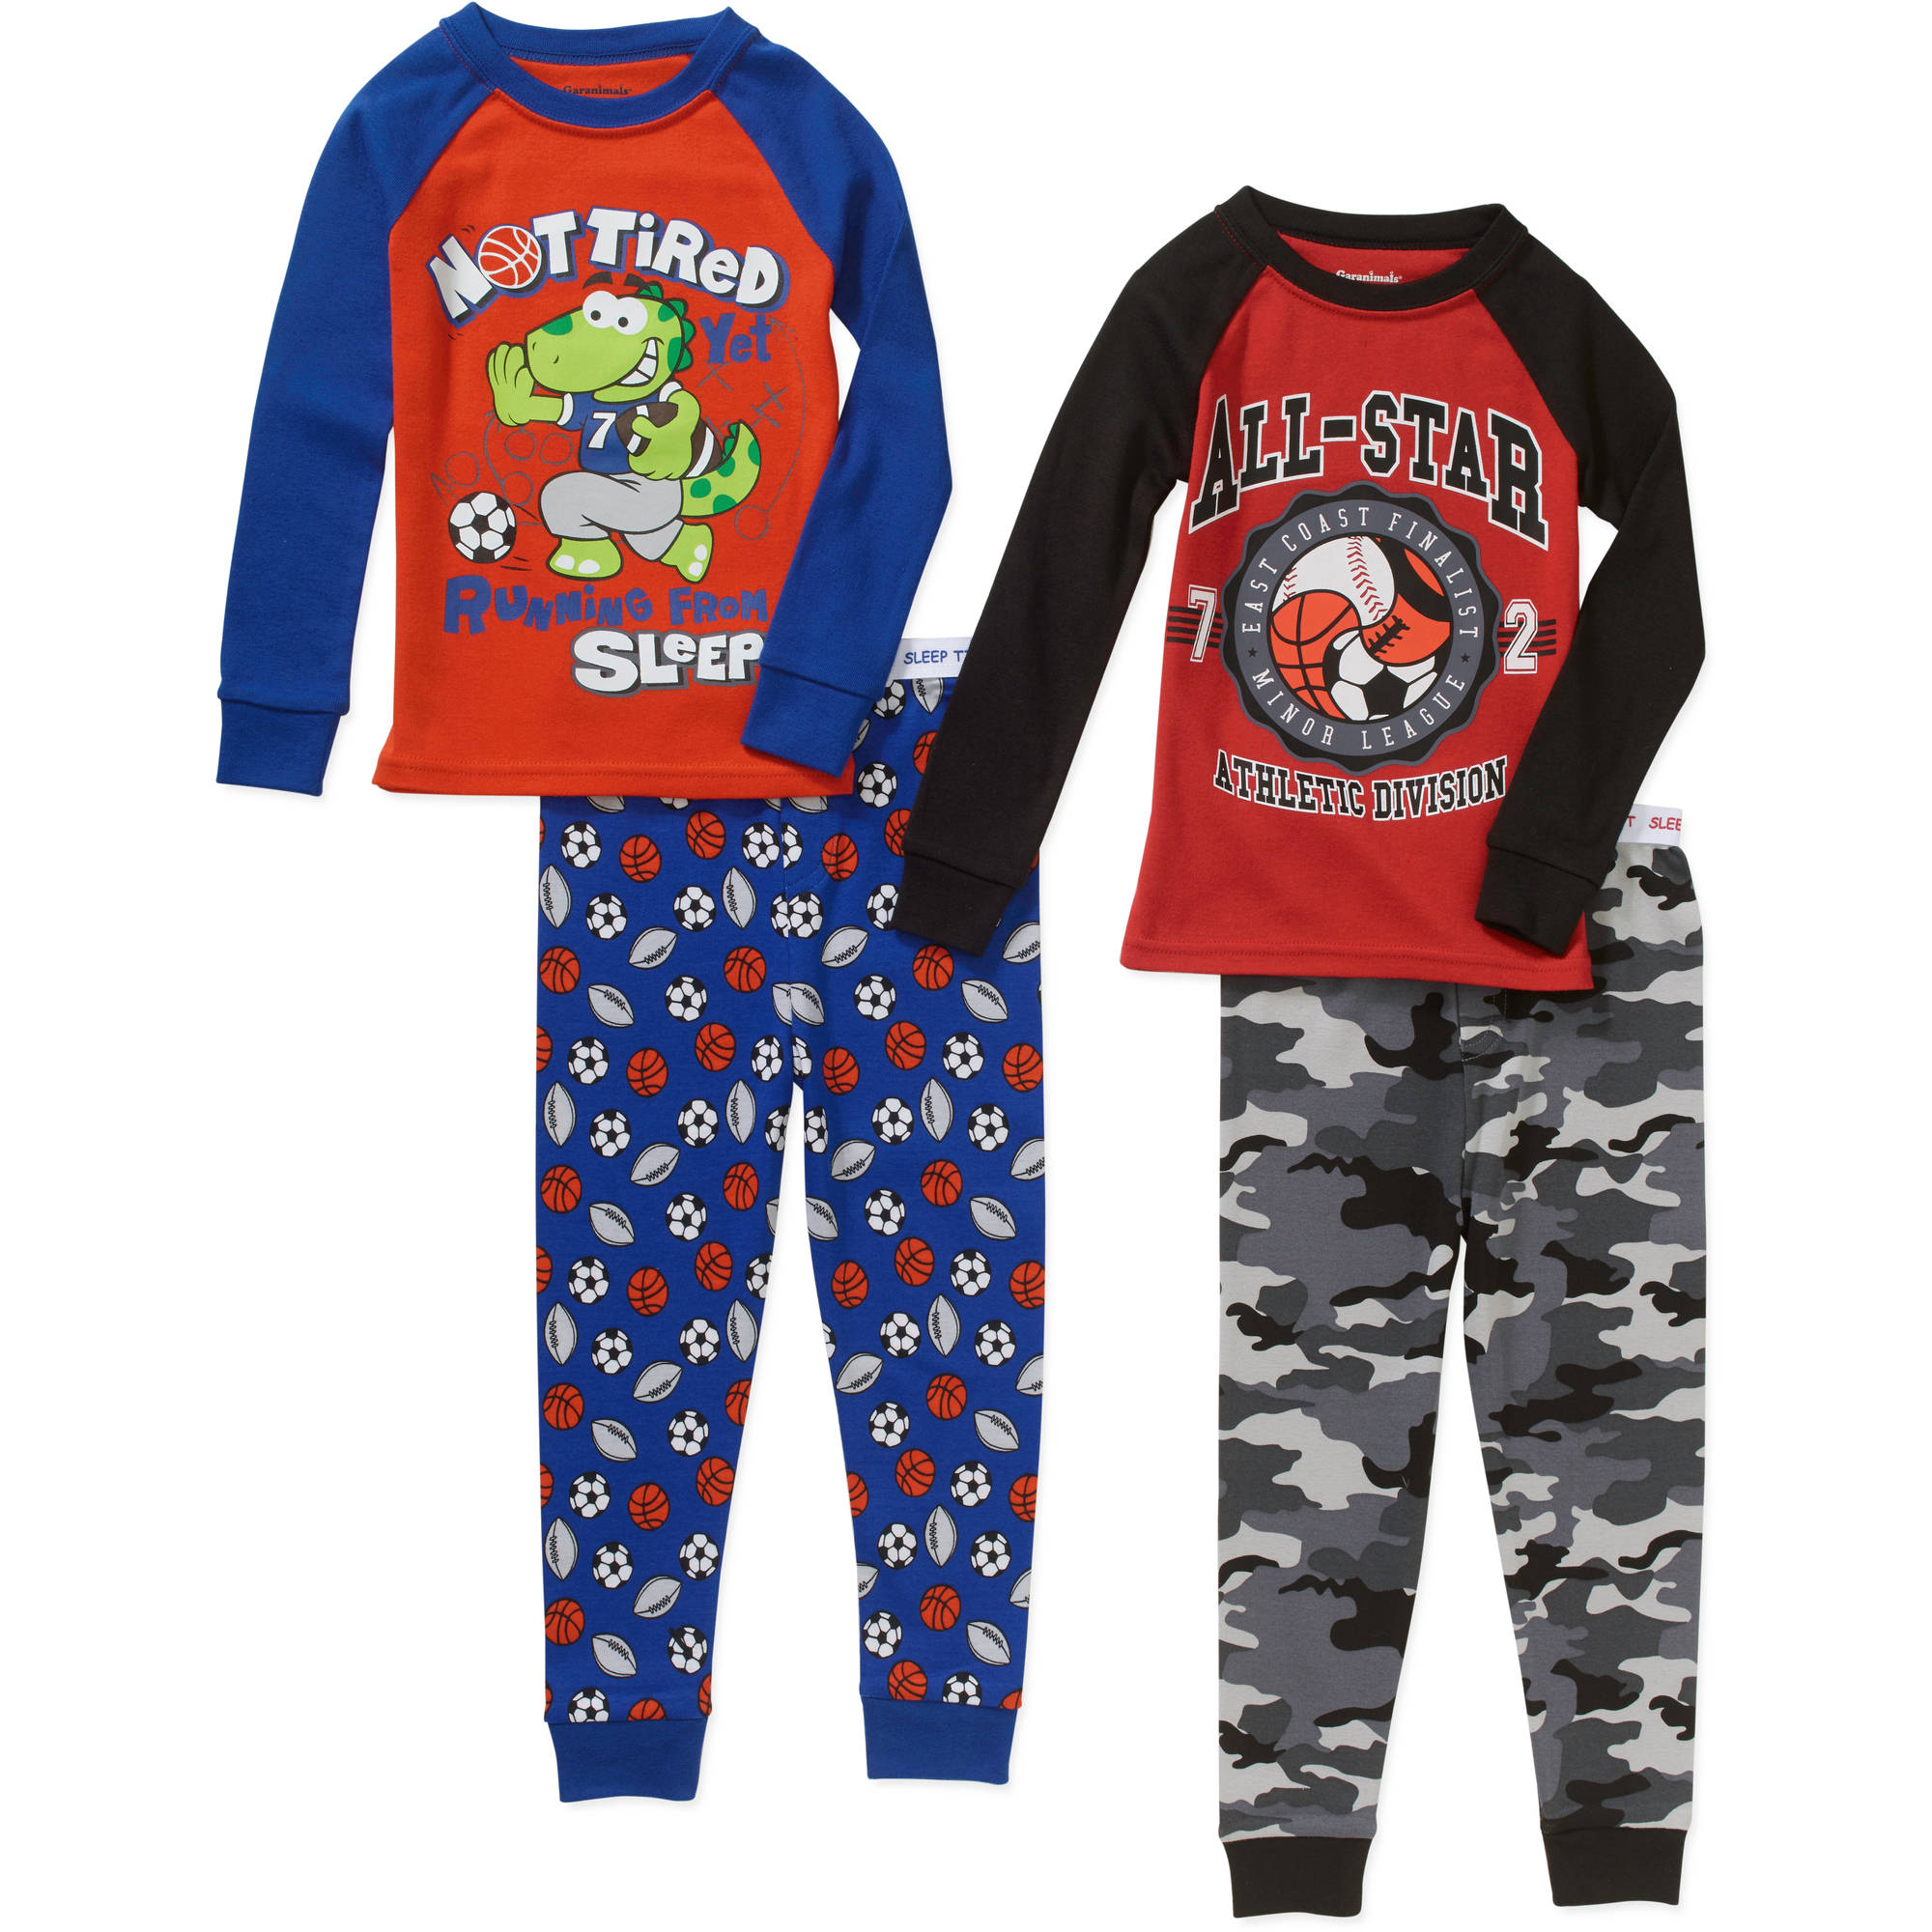 Garanimals Baby Toddler Boy Cotton Tight Fit Pajamas, 2-Sets